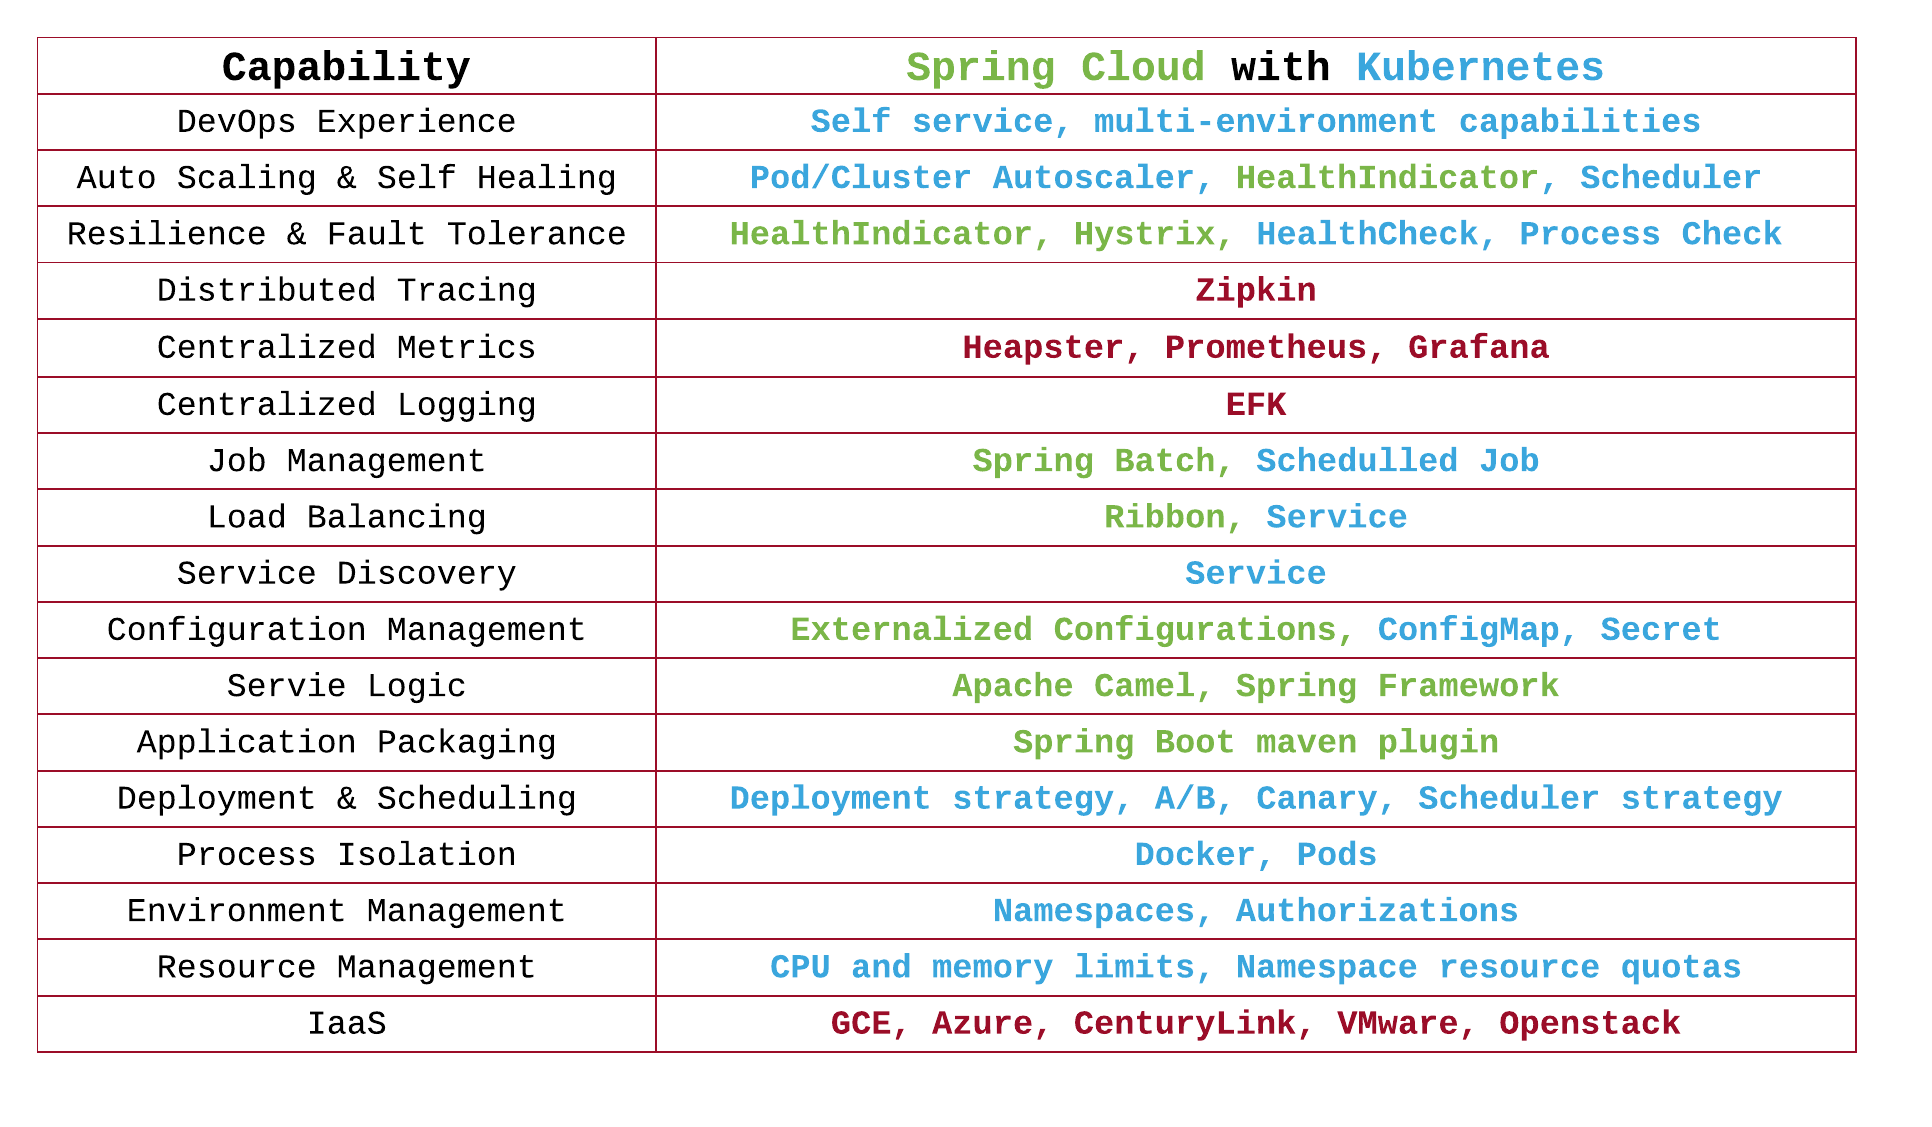 Spring Cloud for Microservices Compared to Kubernetes - Red